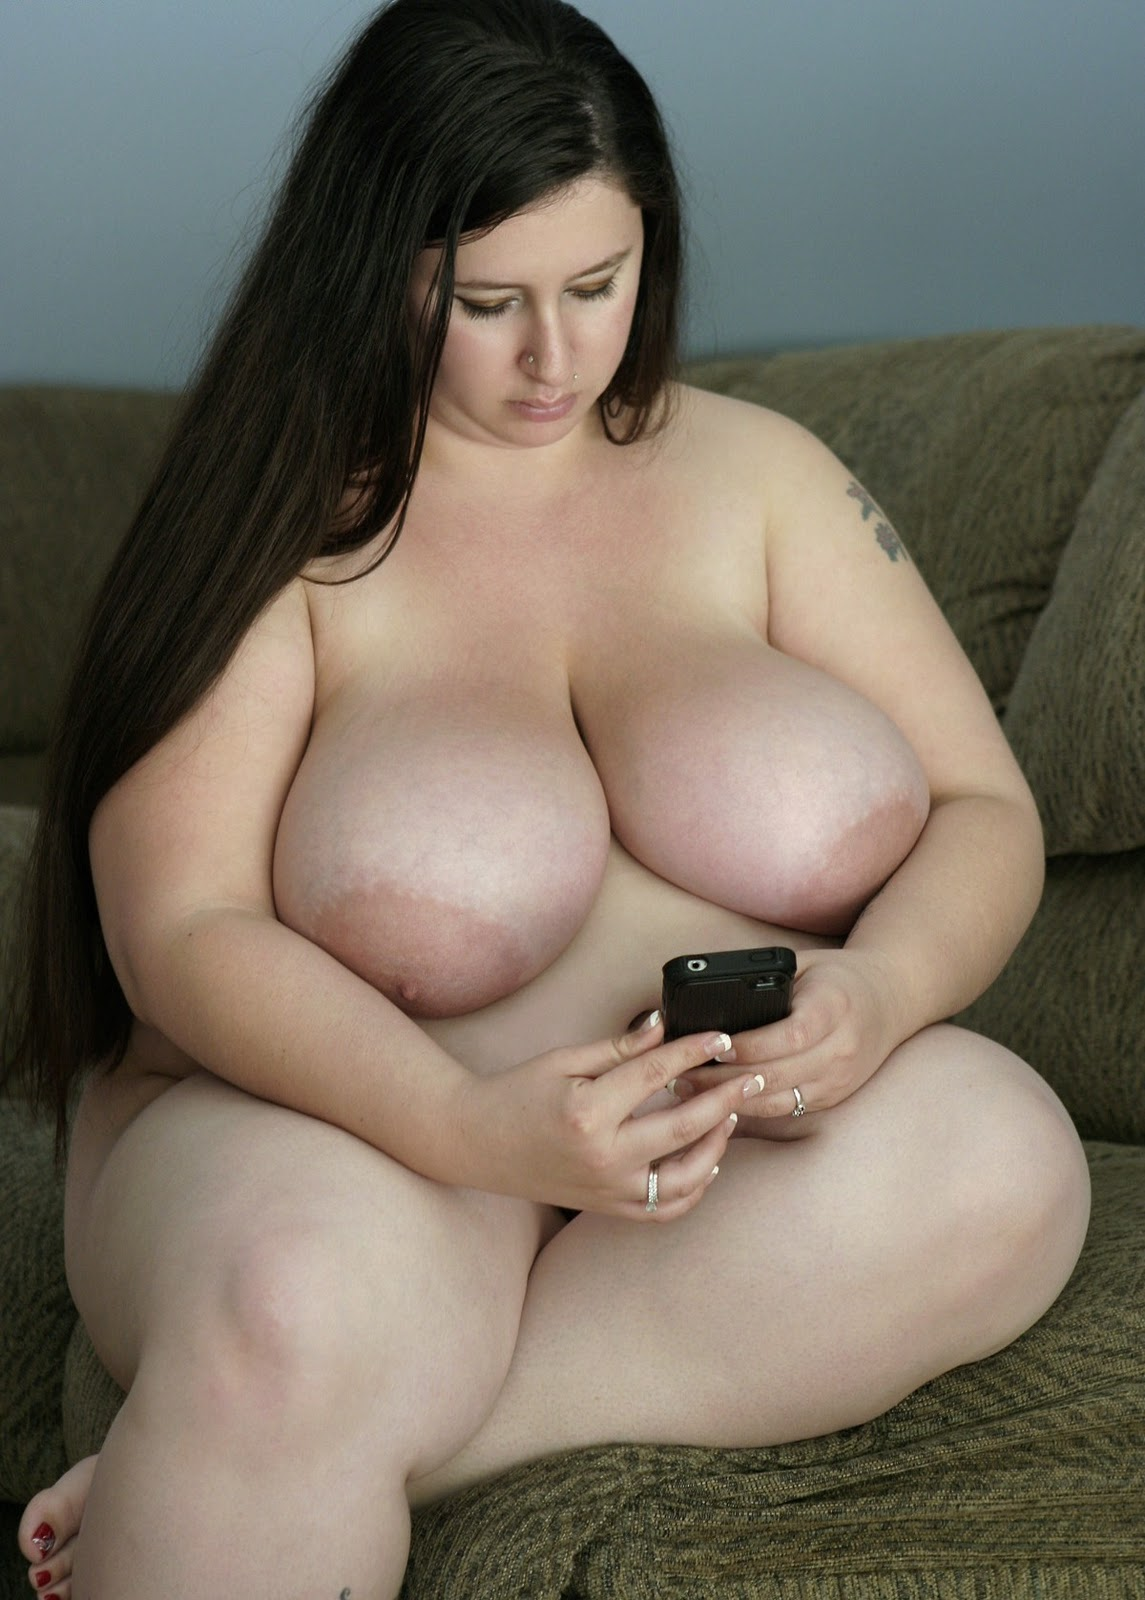 Fat women hot nacked remarkable